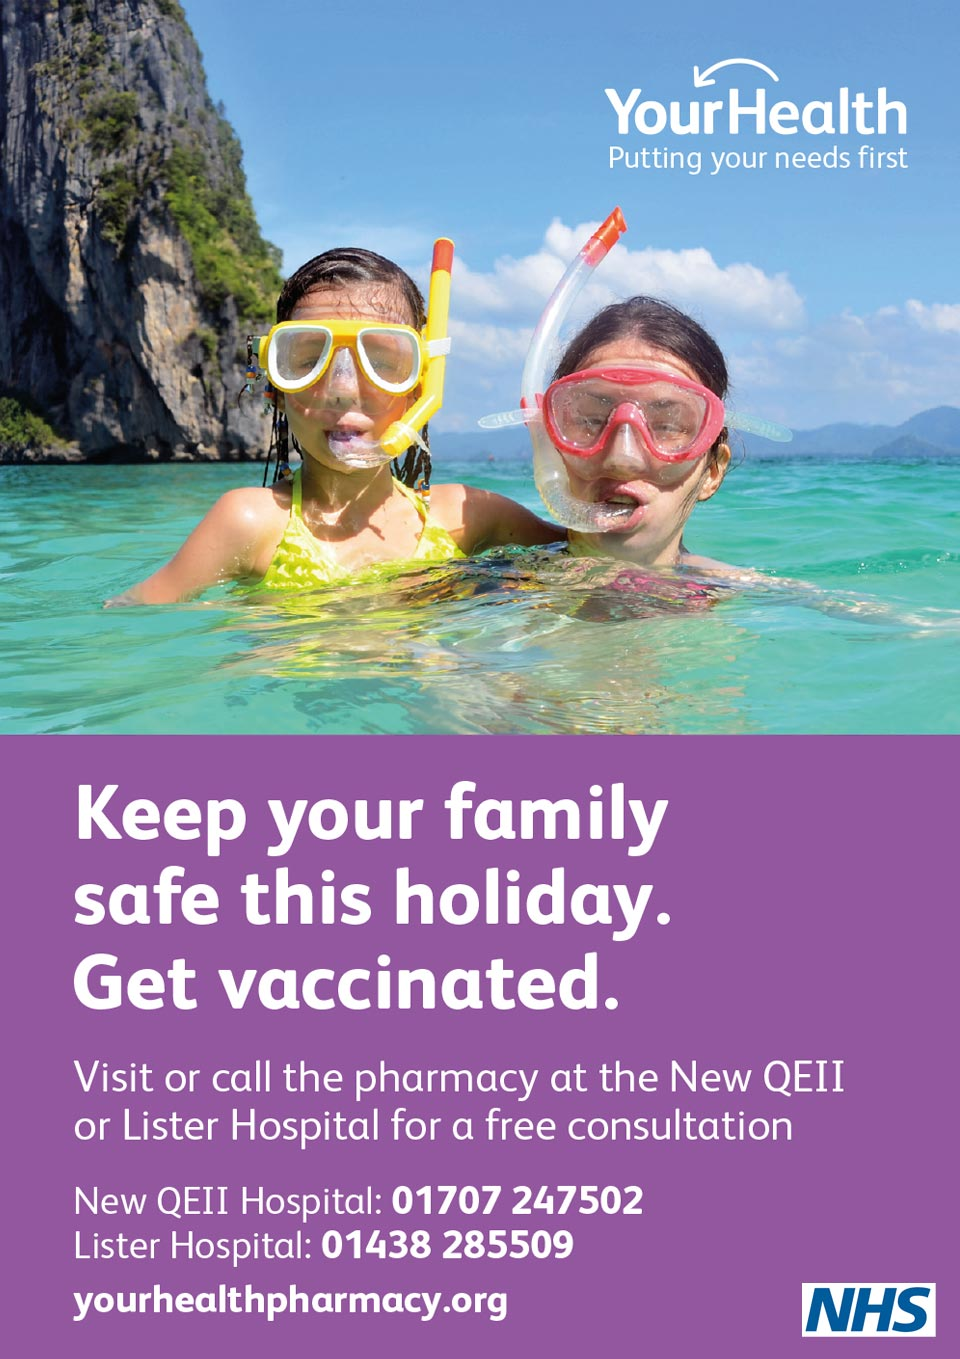 NHS travel vaccination poster